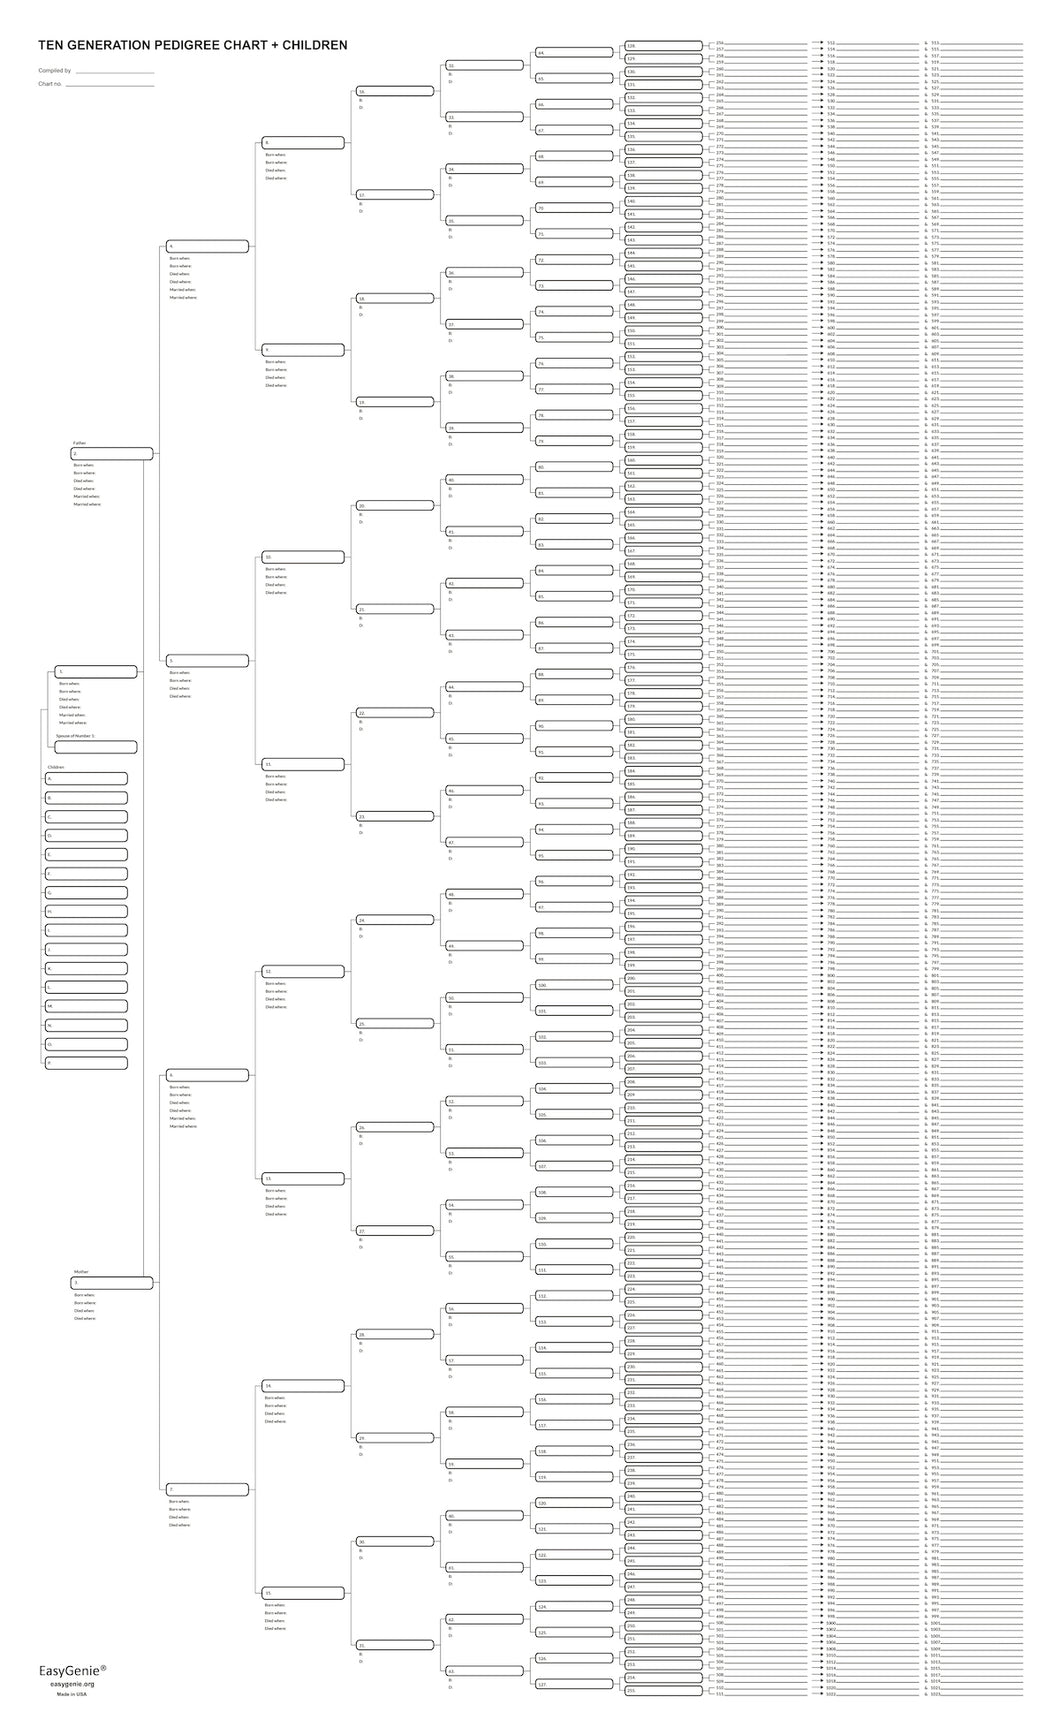 10 Generation Blank Pedigree Chart + Kids (22 x 36 inches, single sheet)